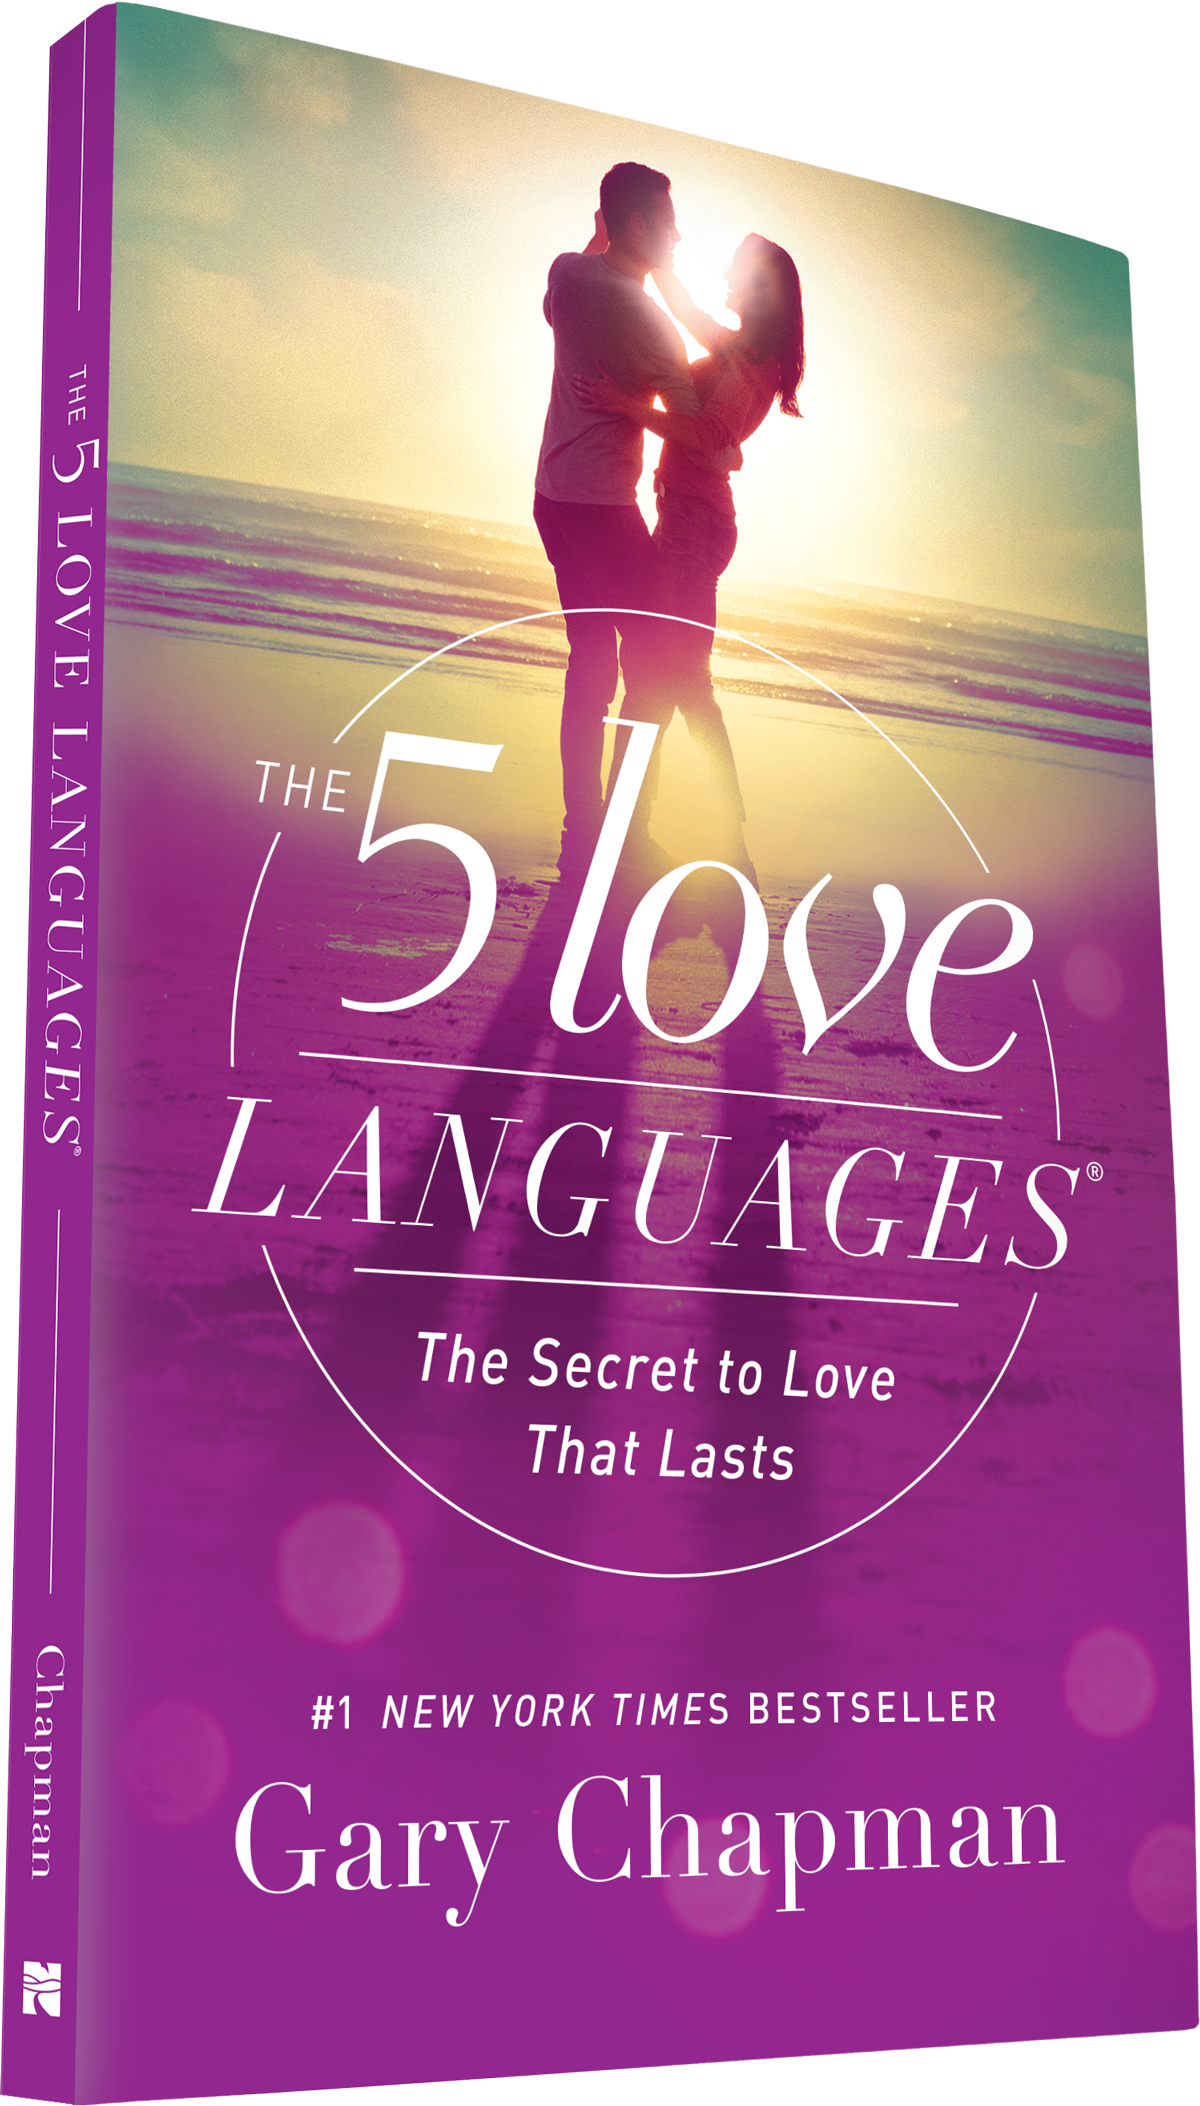 E-books the 5 love languages®.